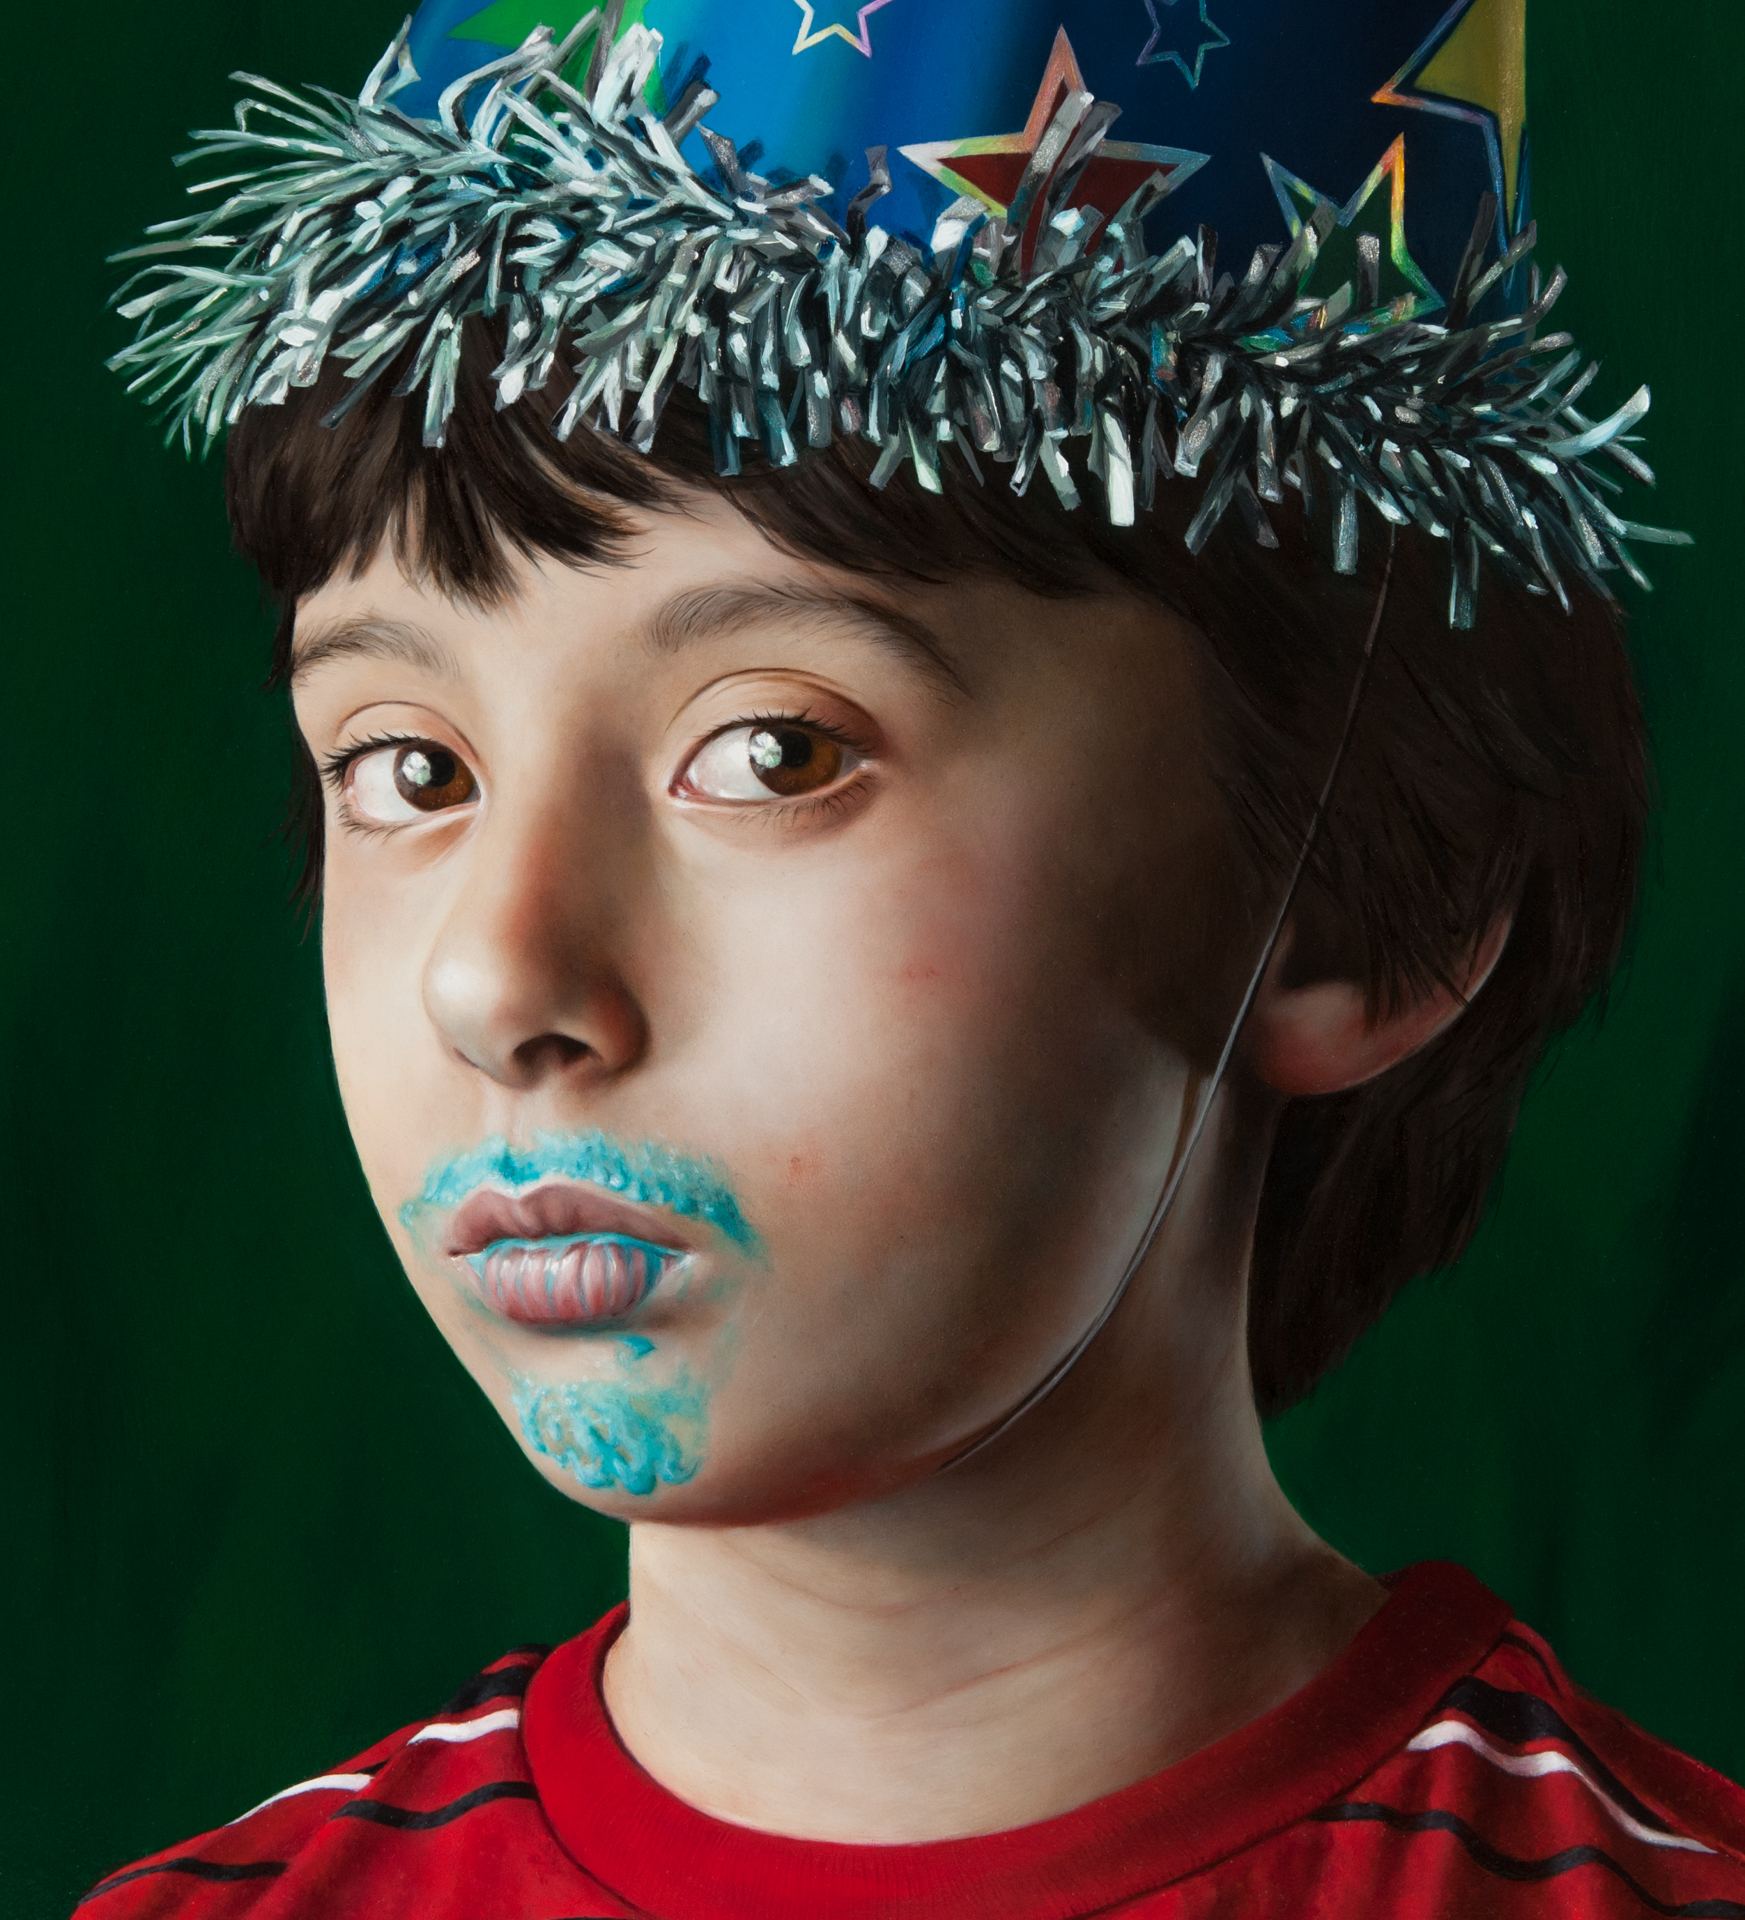 Youth in a Party Hat (detail)